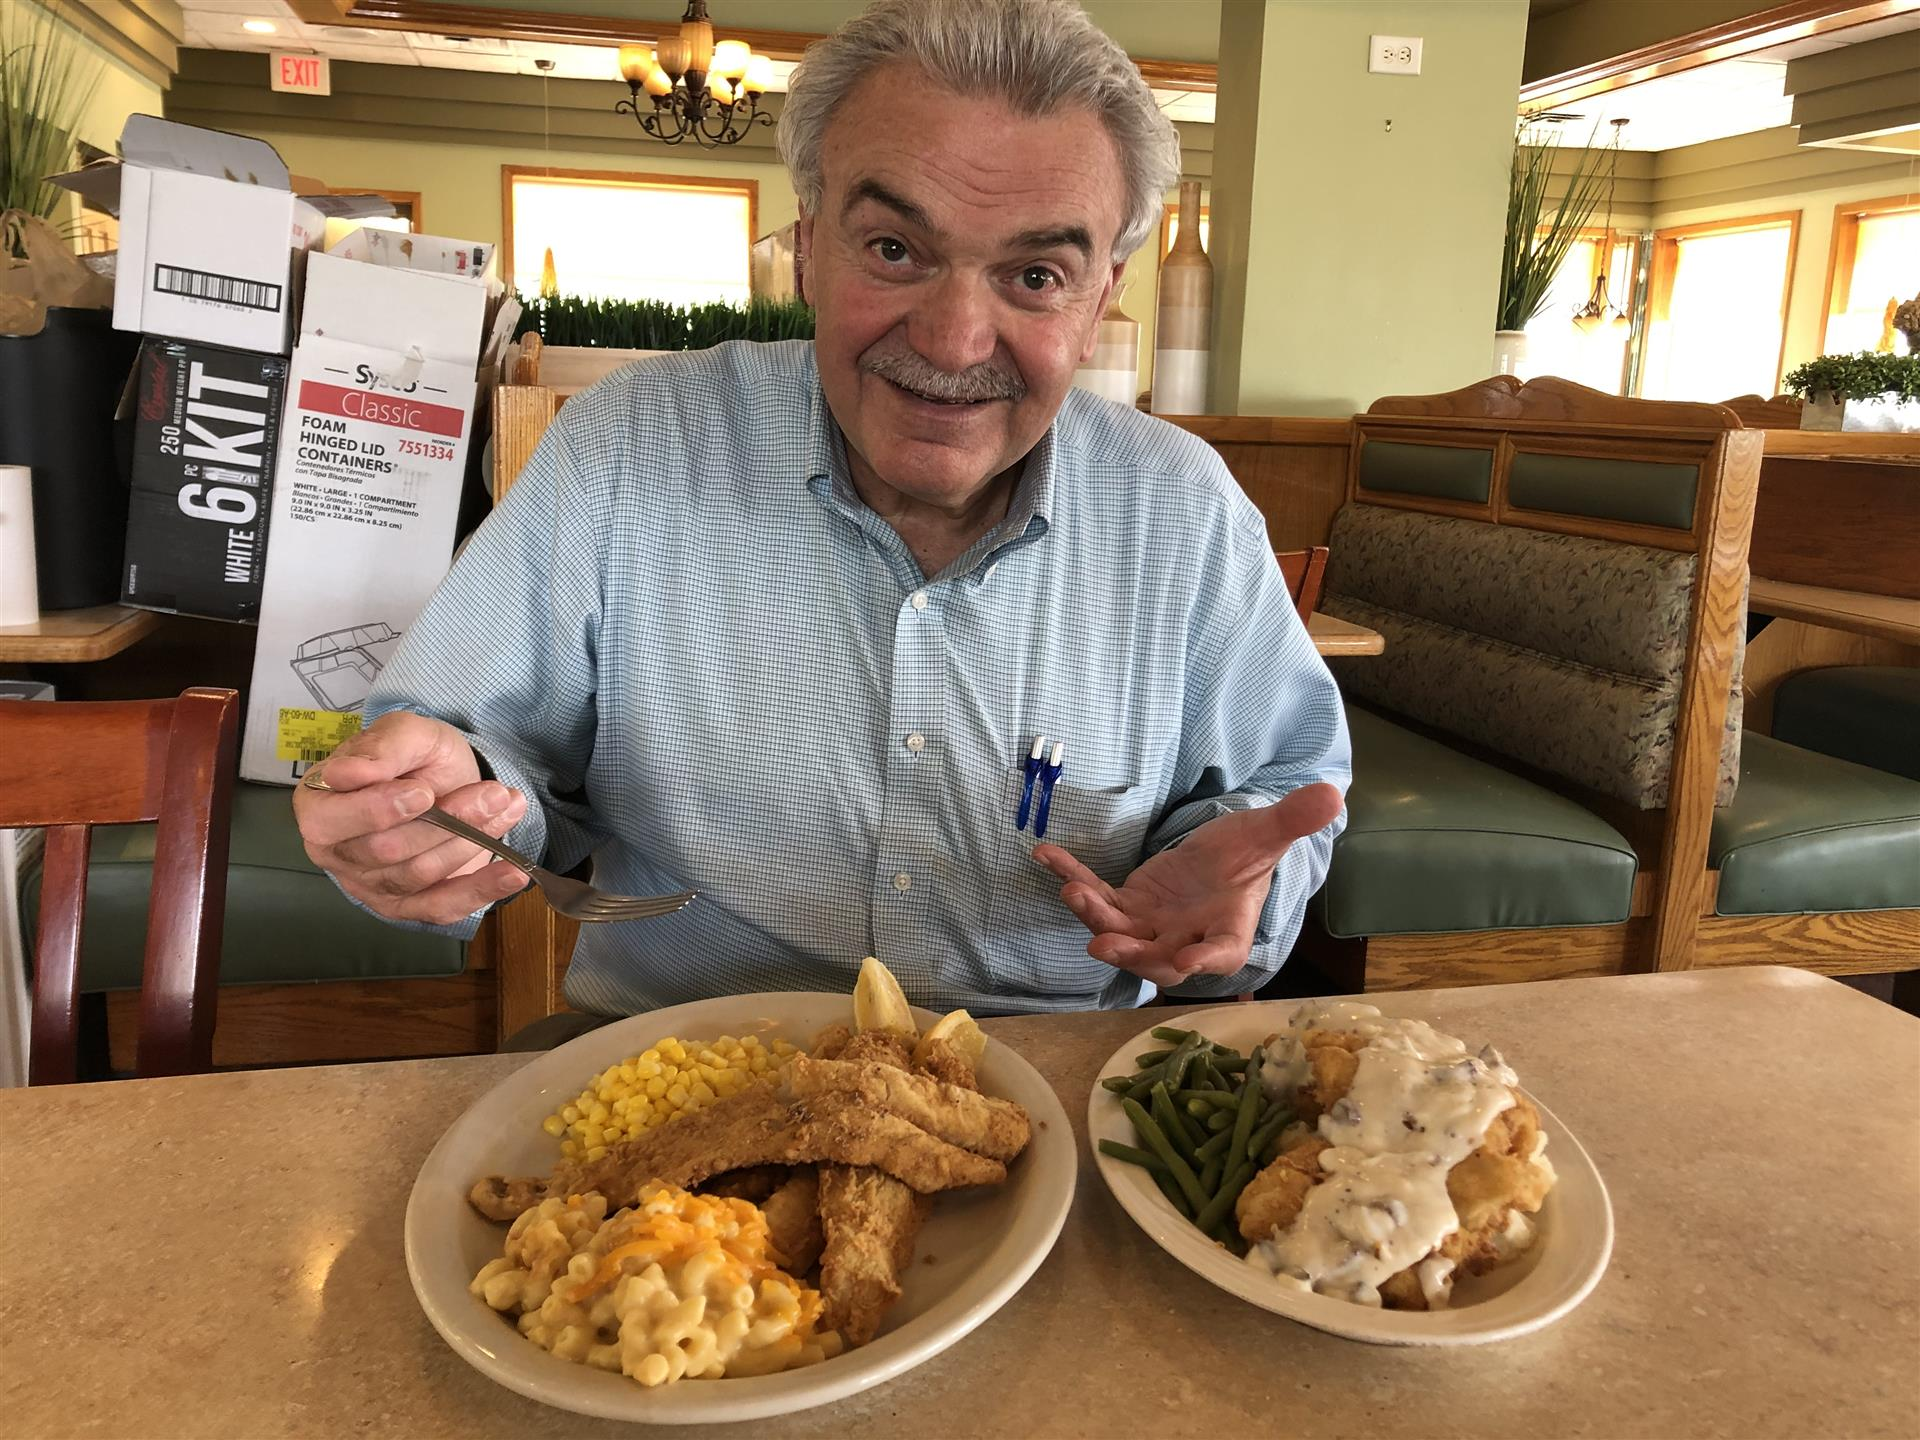 George with two fried entrees